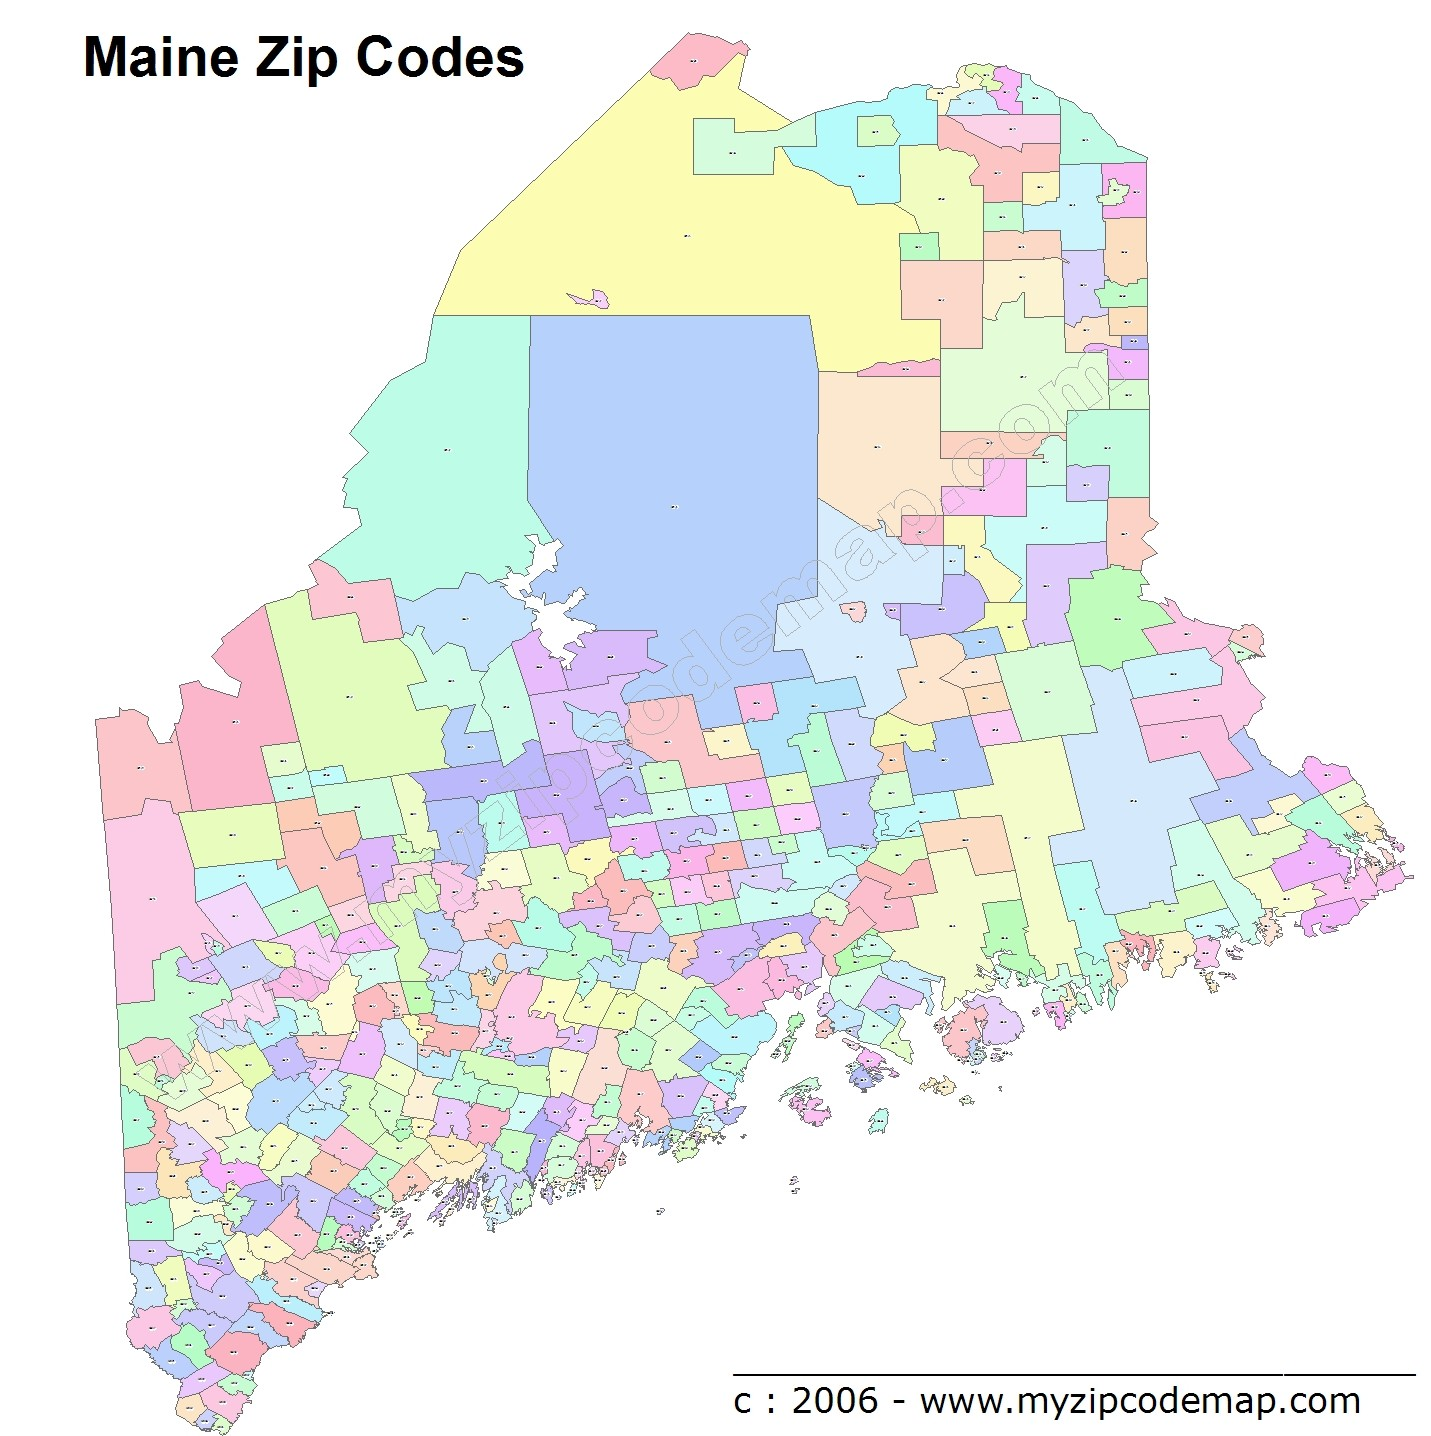 Maine (ME) Zip Code Map